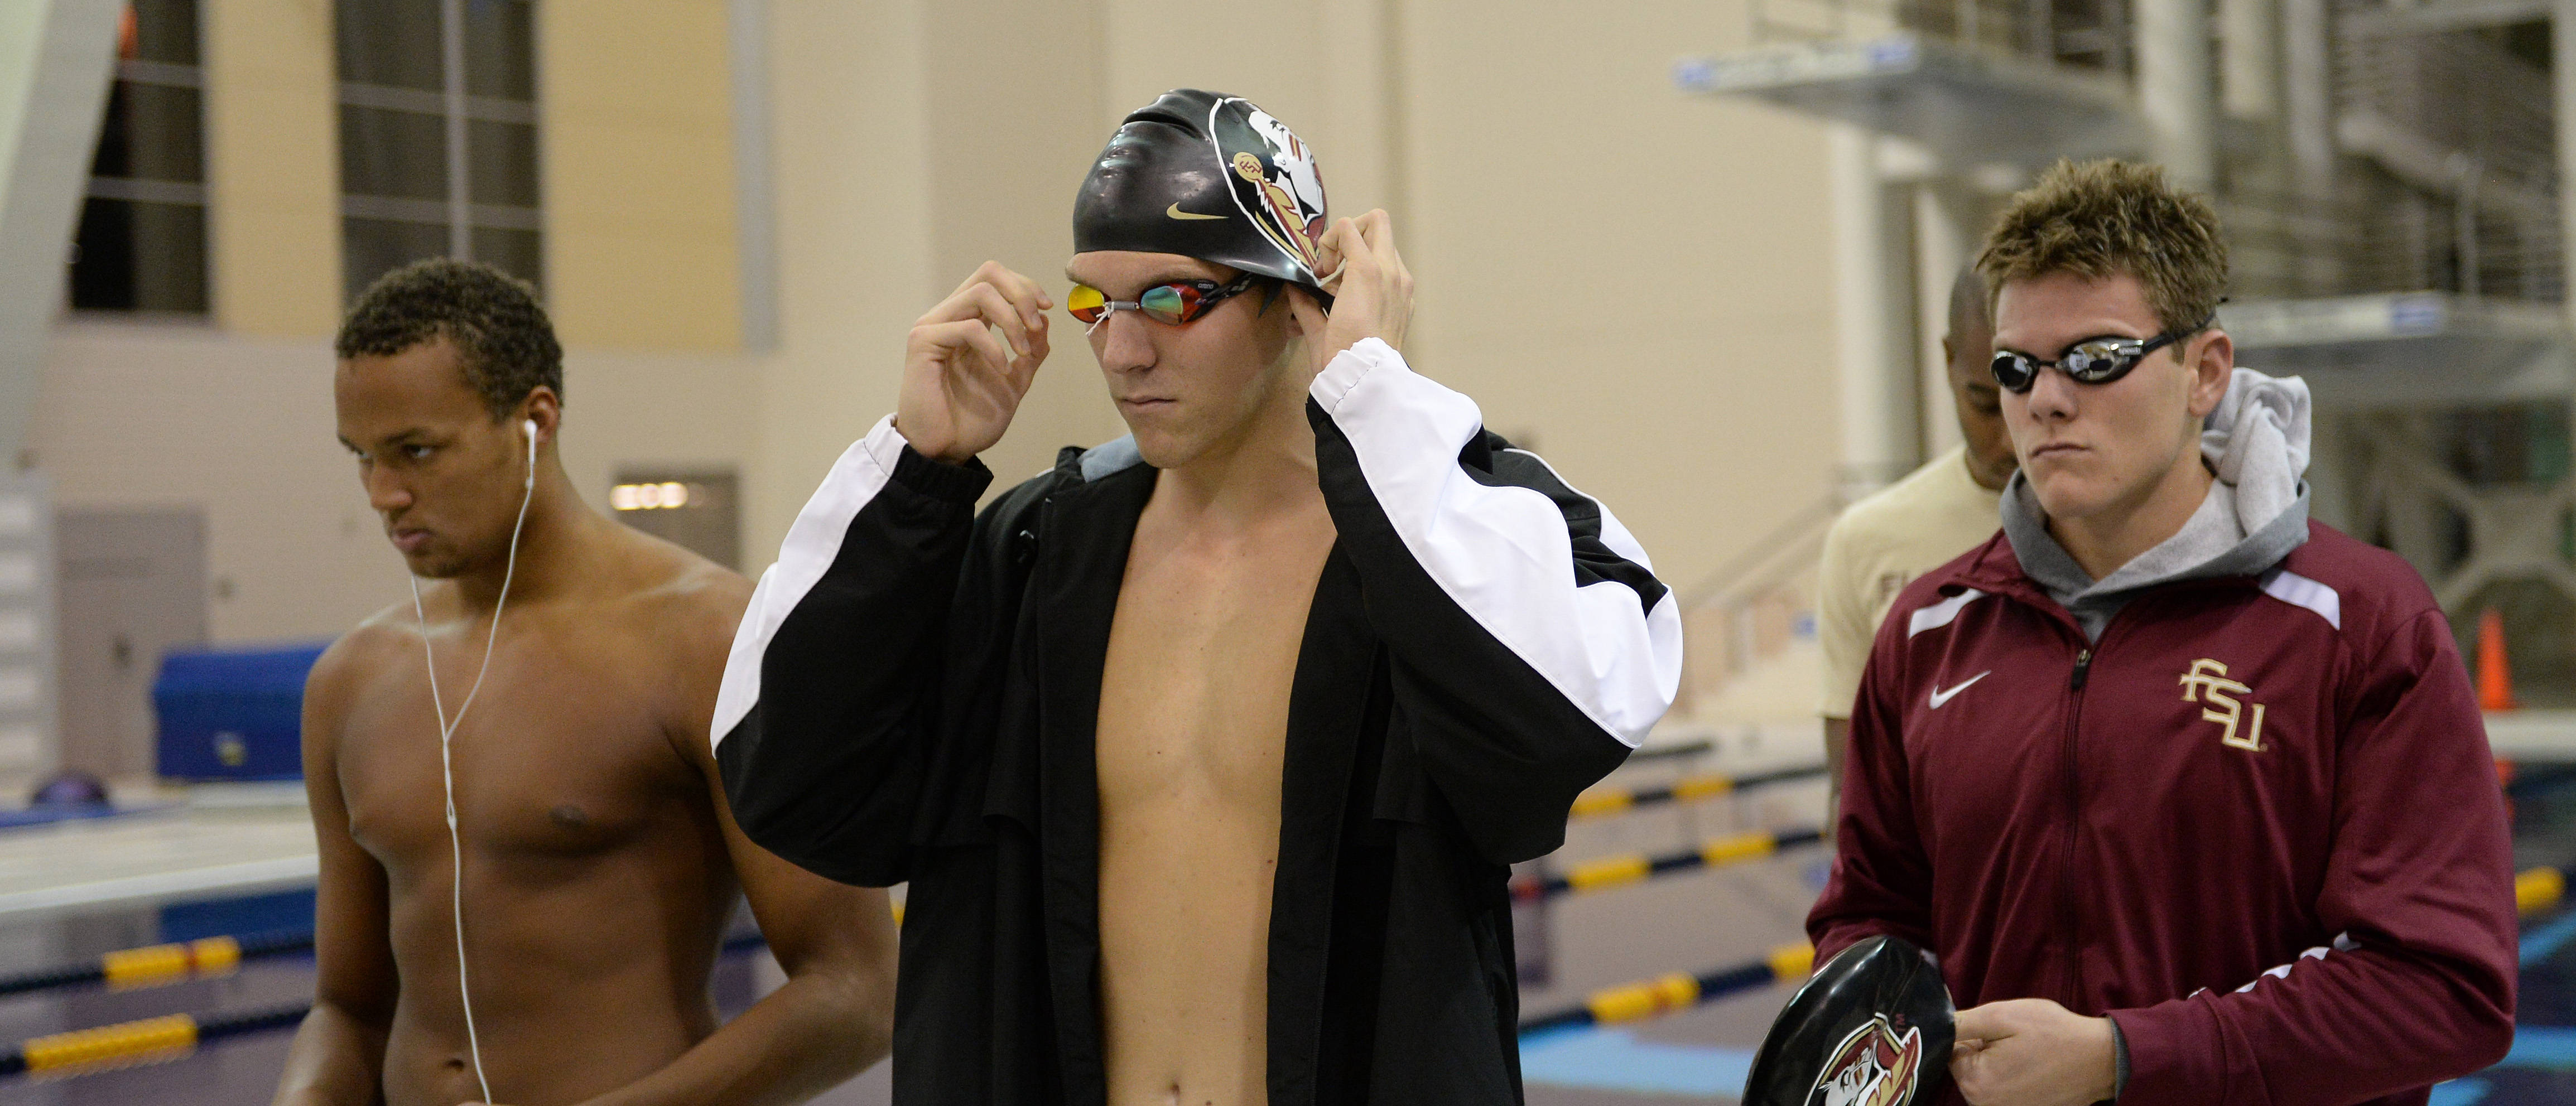 The Seminoles get ready for the medley relay - Mitch White